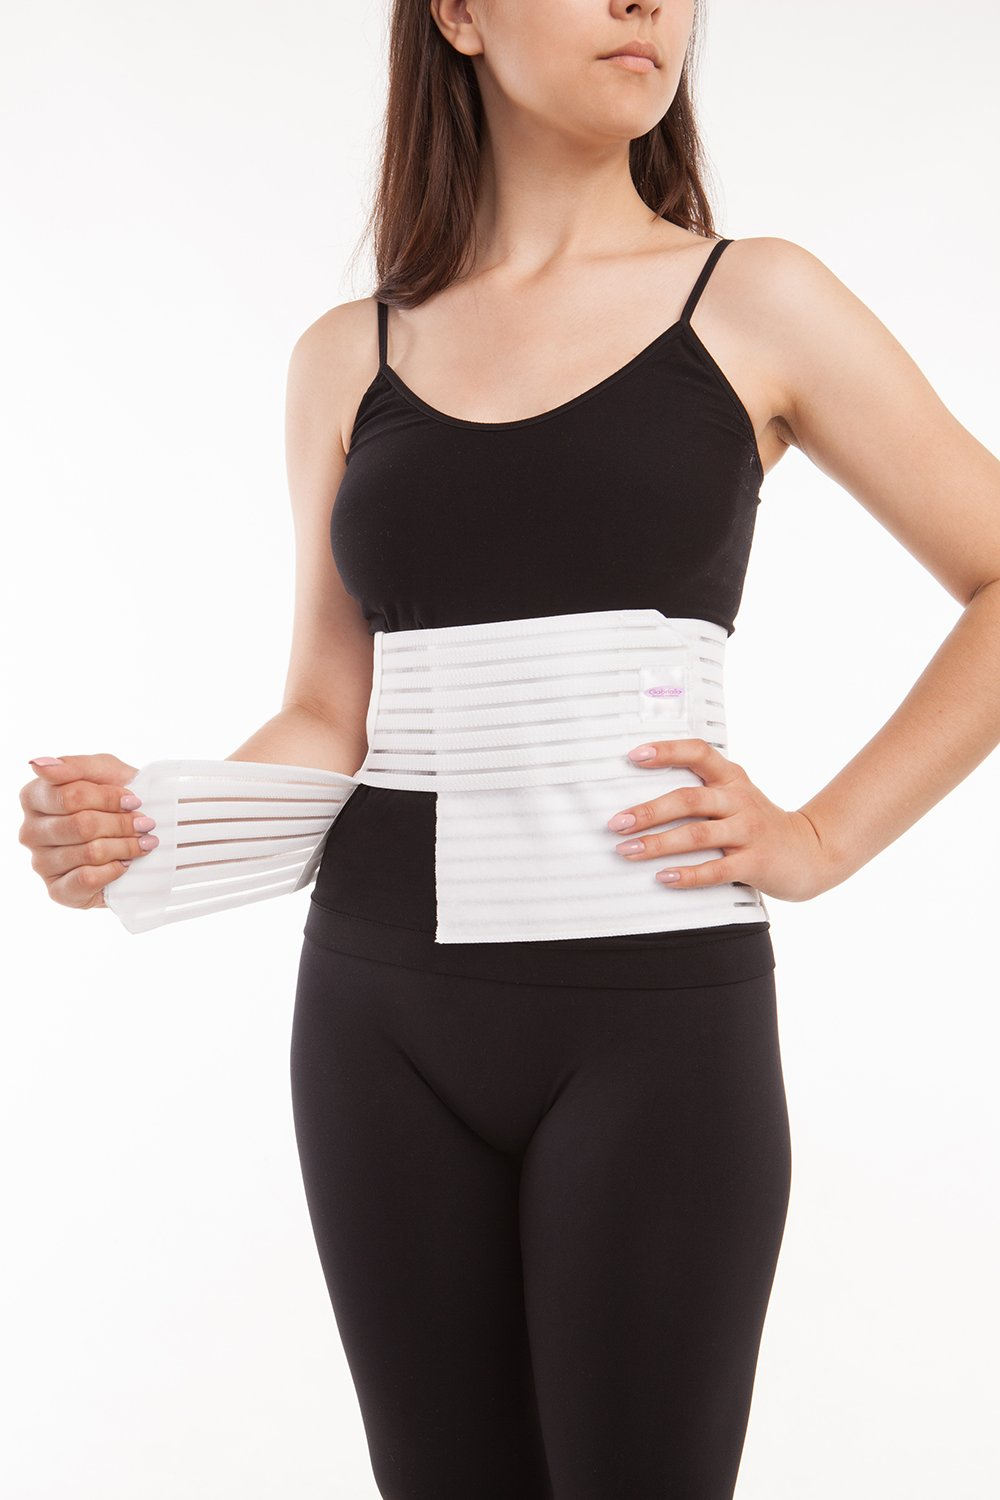 Abdominal Binder - Breathable Light Support 8 inches (AB-208) - Gabrialla